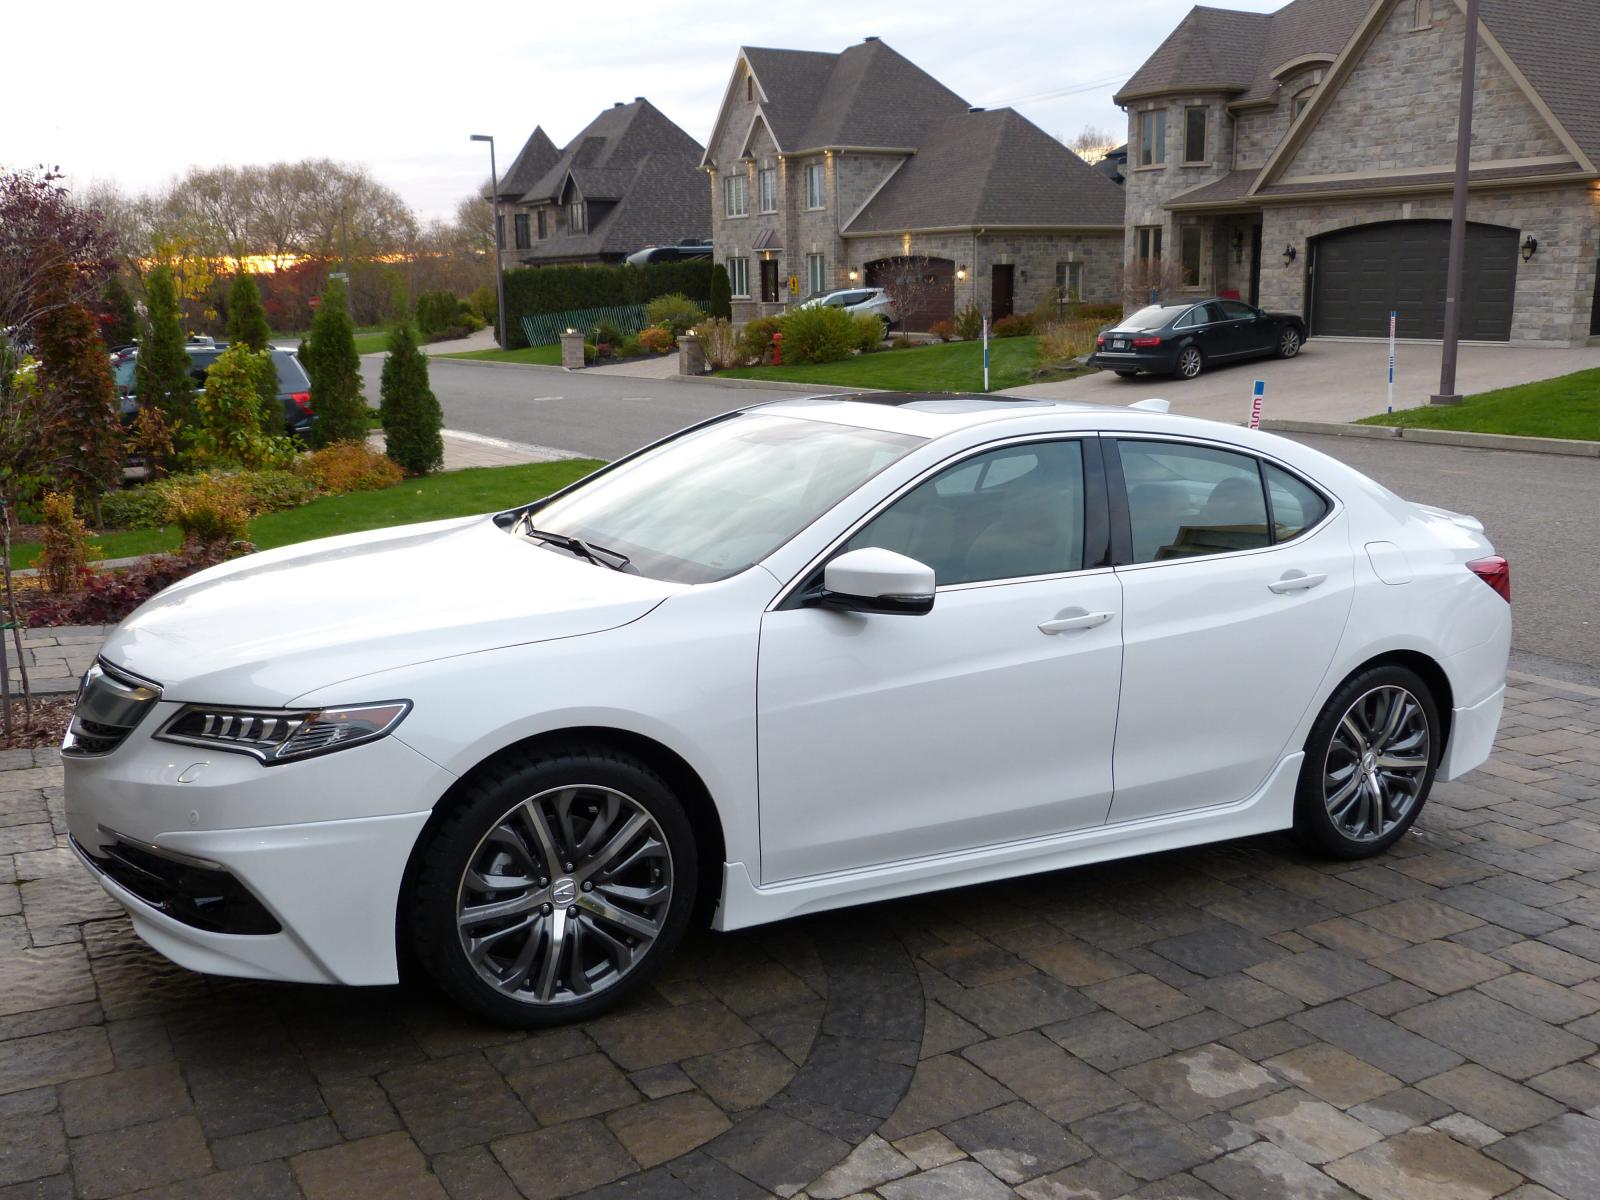 tlx v6 sh awd elite in white color with 39 sport kit. Black Bedroom Furniture Sets. Home Design Ideas